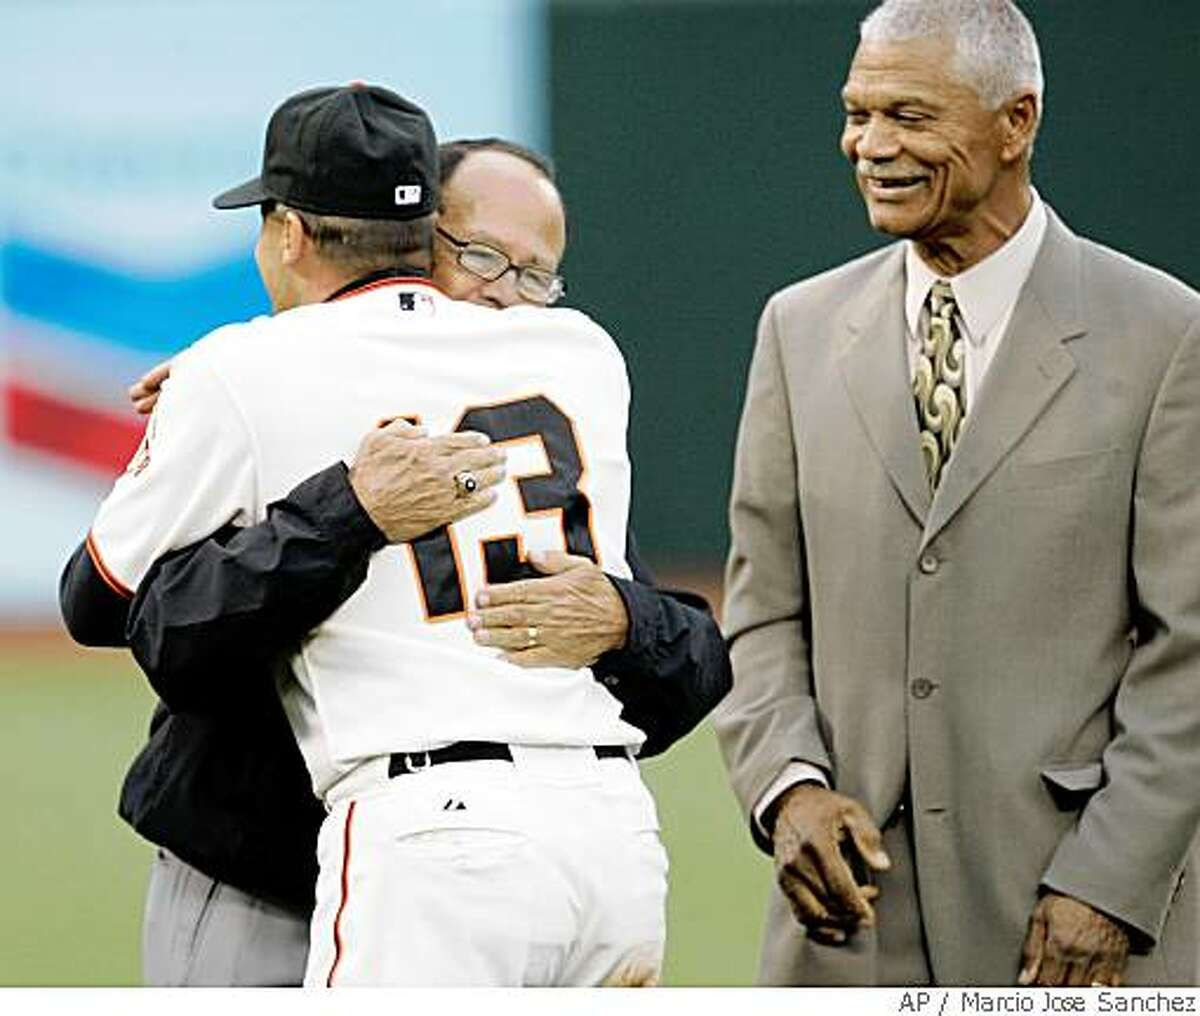 San Francisco Giants shortstop Omar Vizquel (13) is hugged by former shortstop Luis Aparicio as former Giants manager Felipe Alou, right, looks on as Vizquel is honored for becoming the all-time leader in games played at shortstop before the start of a baseball game against the San Diego Padres in San Francisco, Friday, May 30, 2008. Associated Press photo by Marcio Jose Sanchez